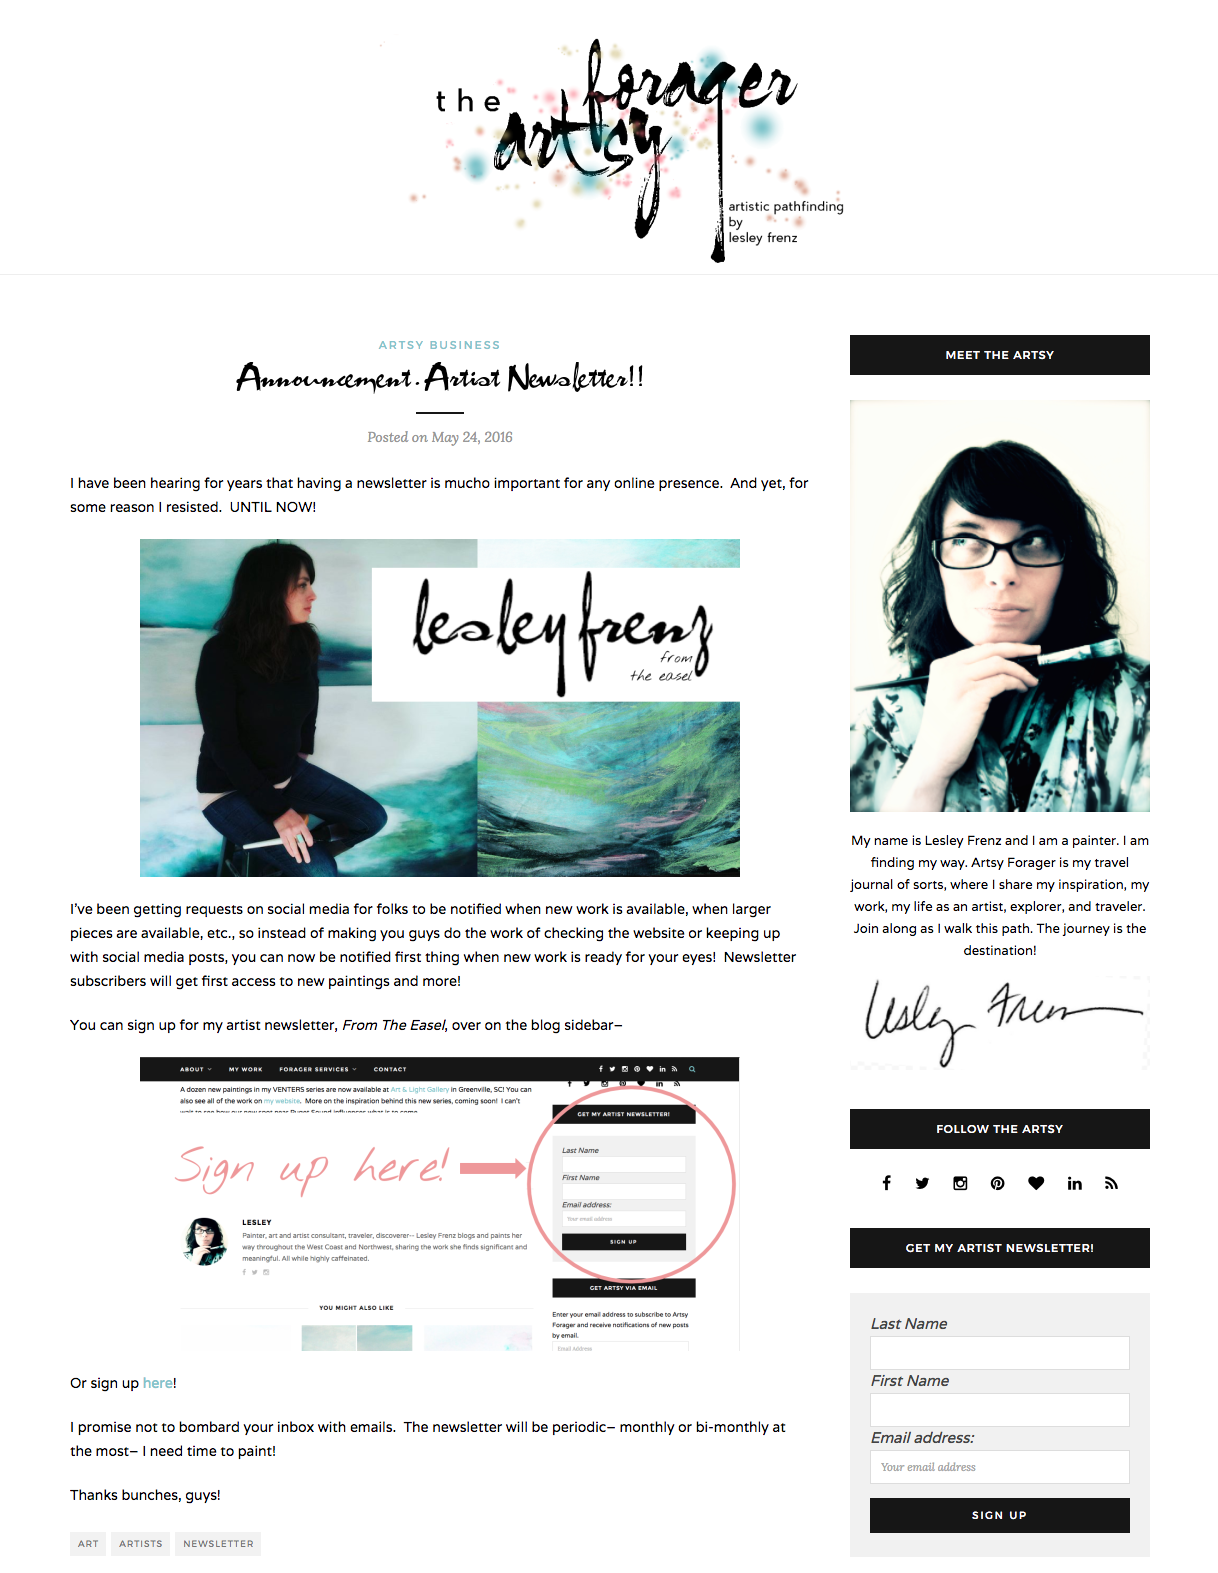 Artsy Forager Artist Website Newsletter Opt-in